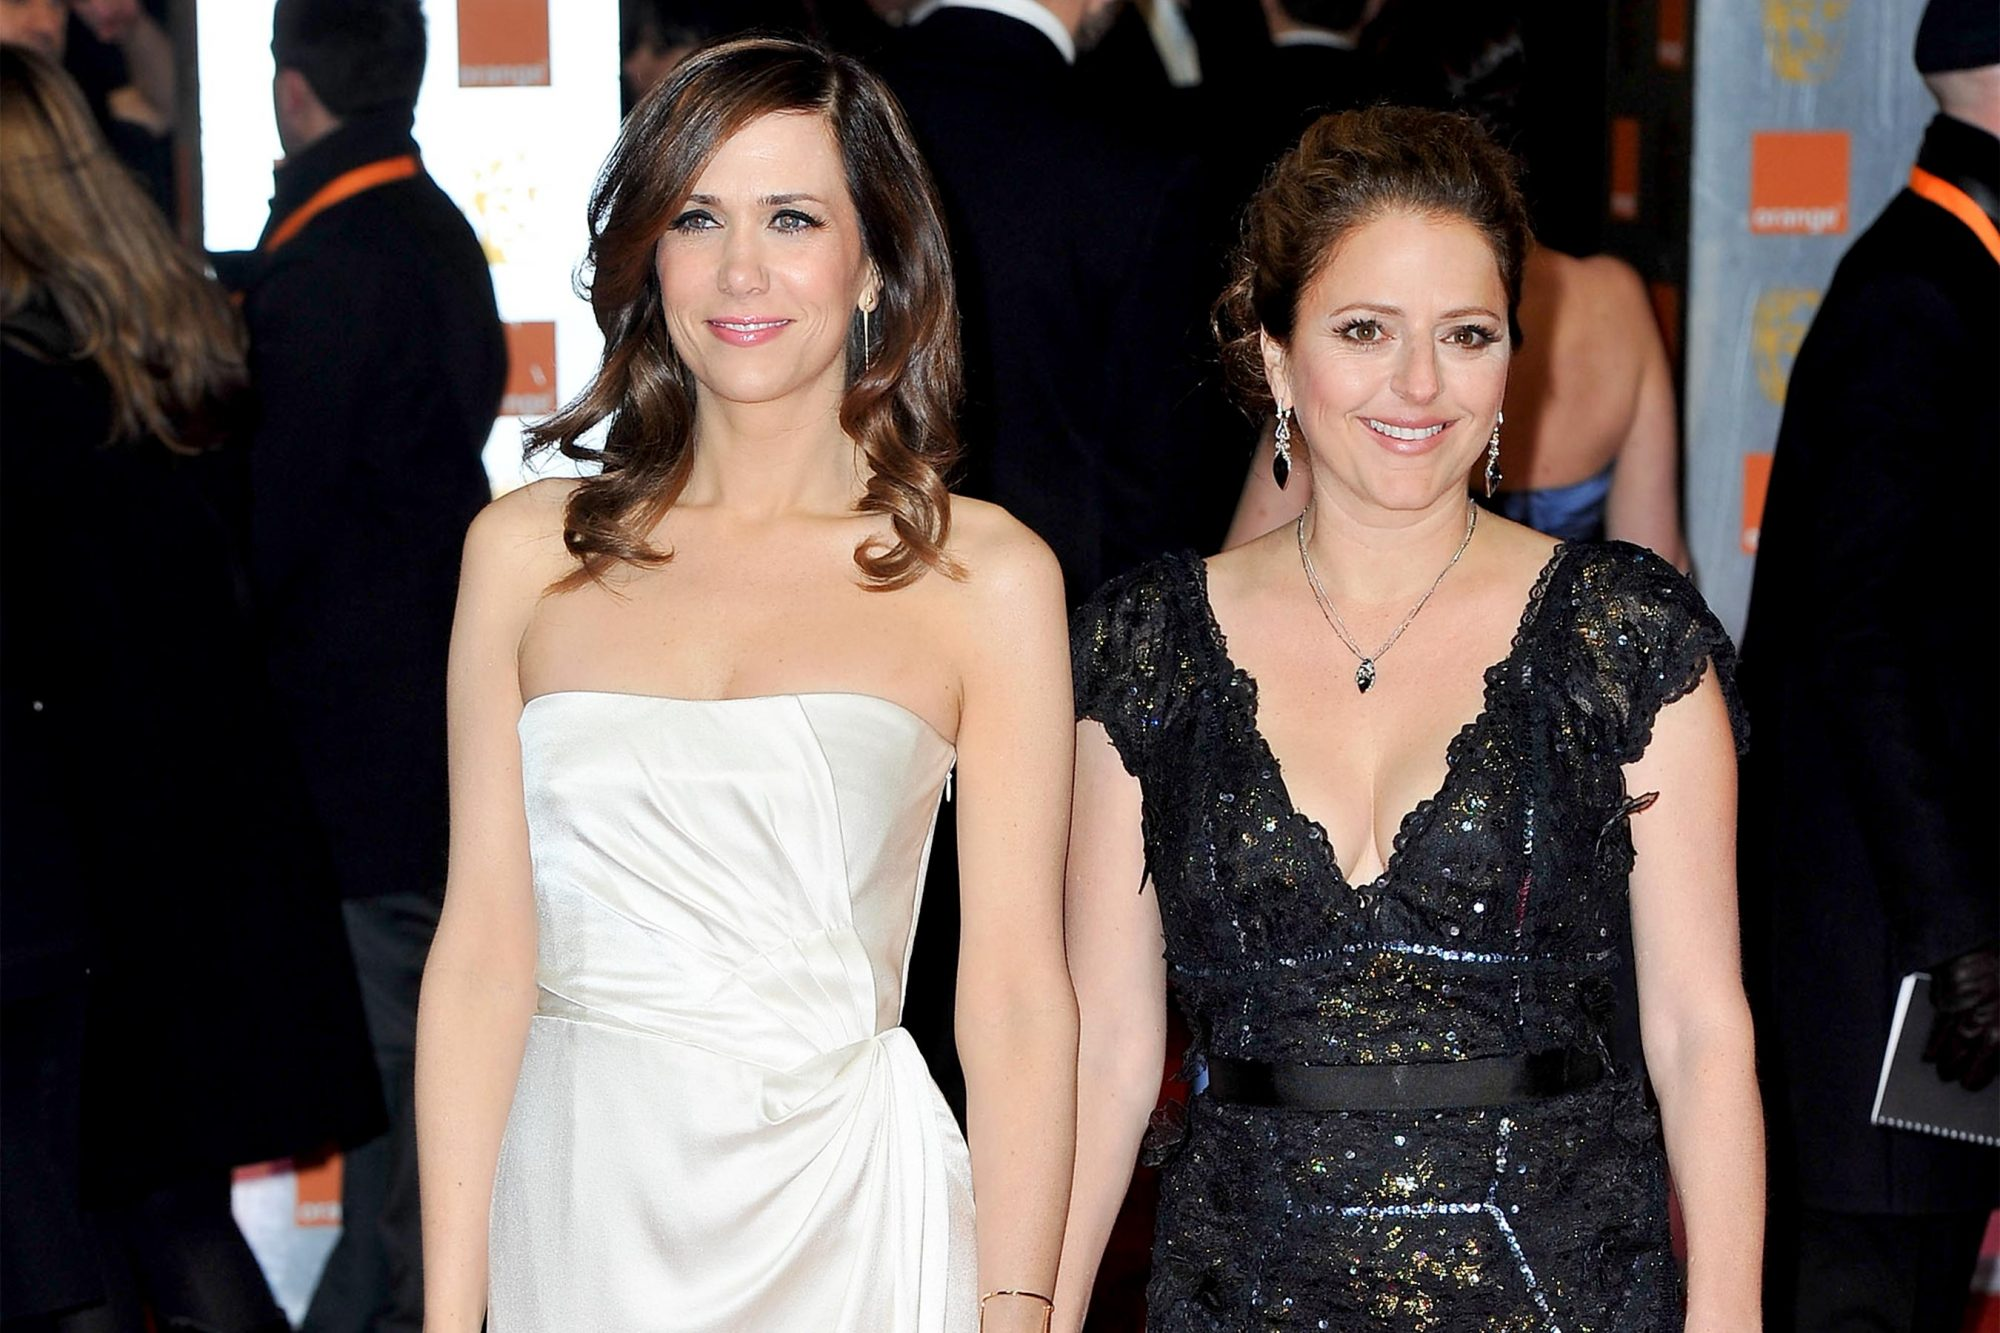 LONDON, ENGLAND - FEBRUARY 12: (L-R) Actors Kristen Wiig and Annie Mumolo attend the Orange British Academy Film Awards 2012 at the Royal Opera House on February 12, 2012 in London, England. (Photo by Gareth Cattermole/Getty Images)